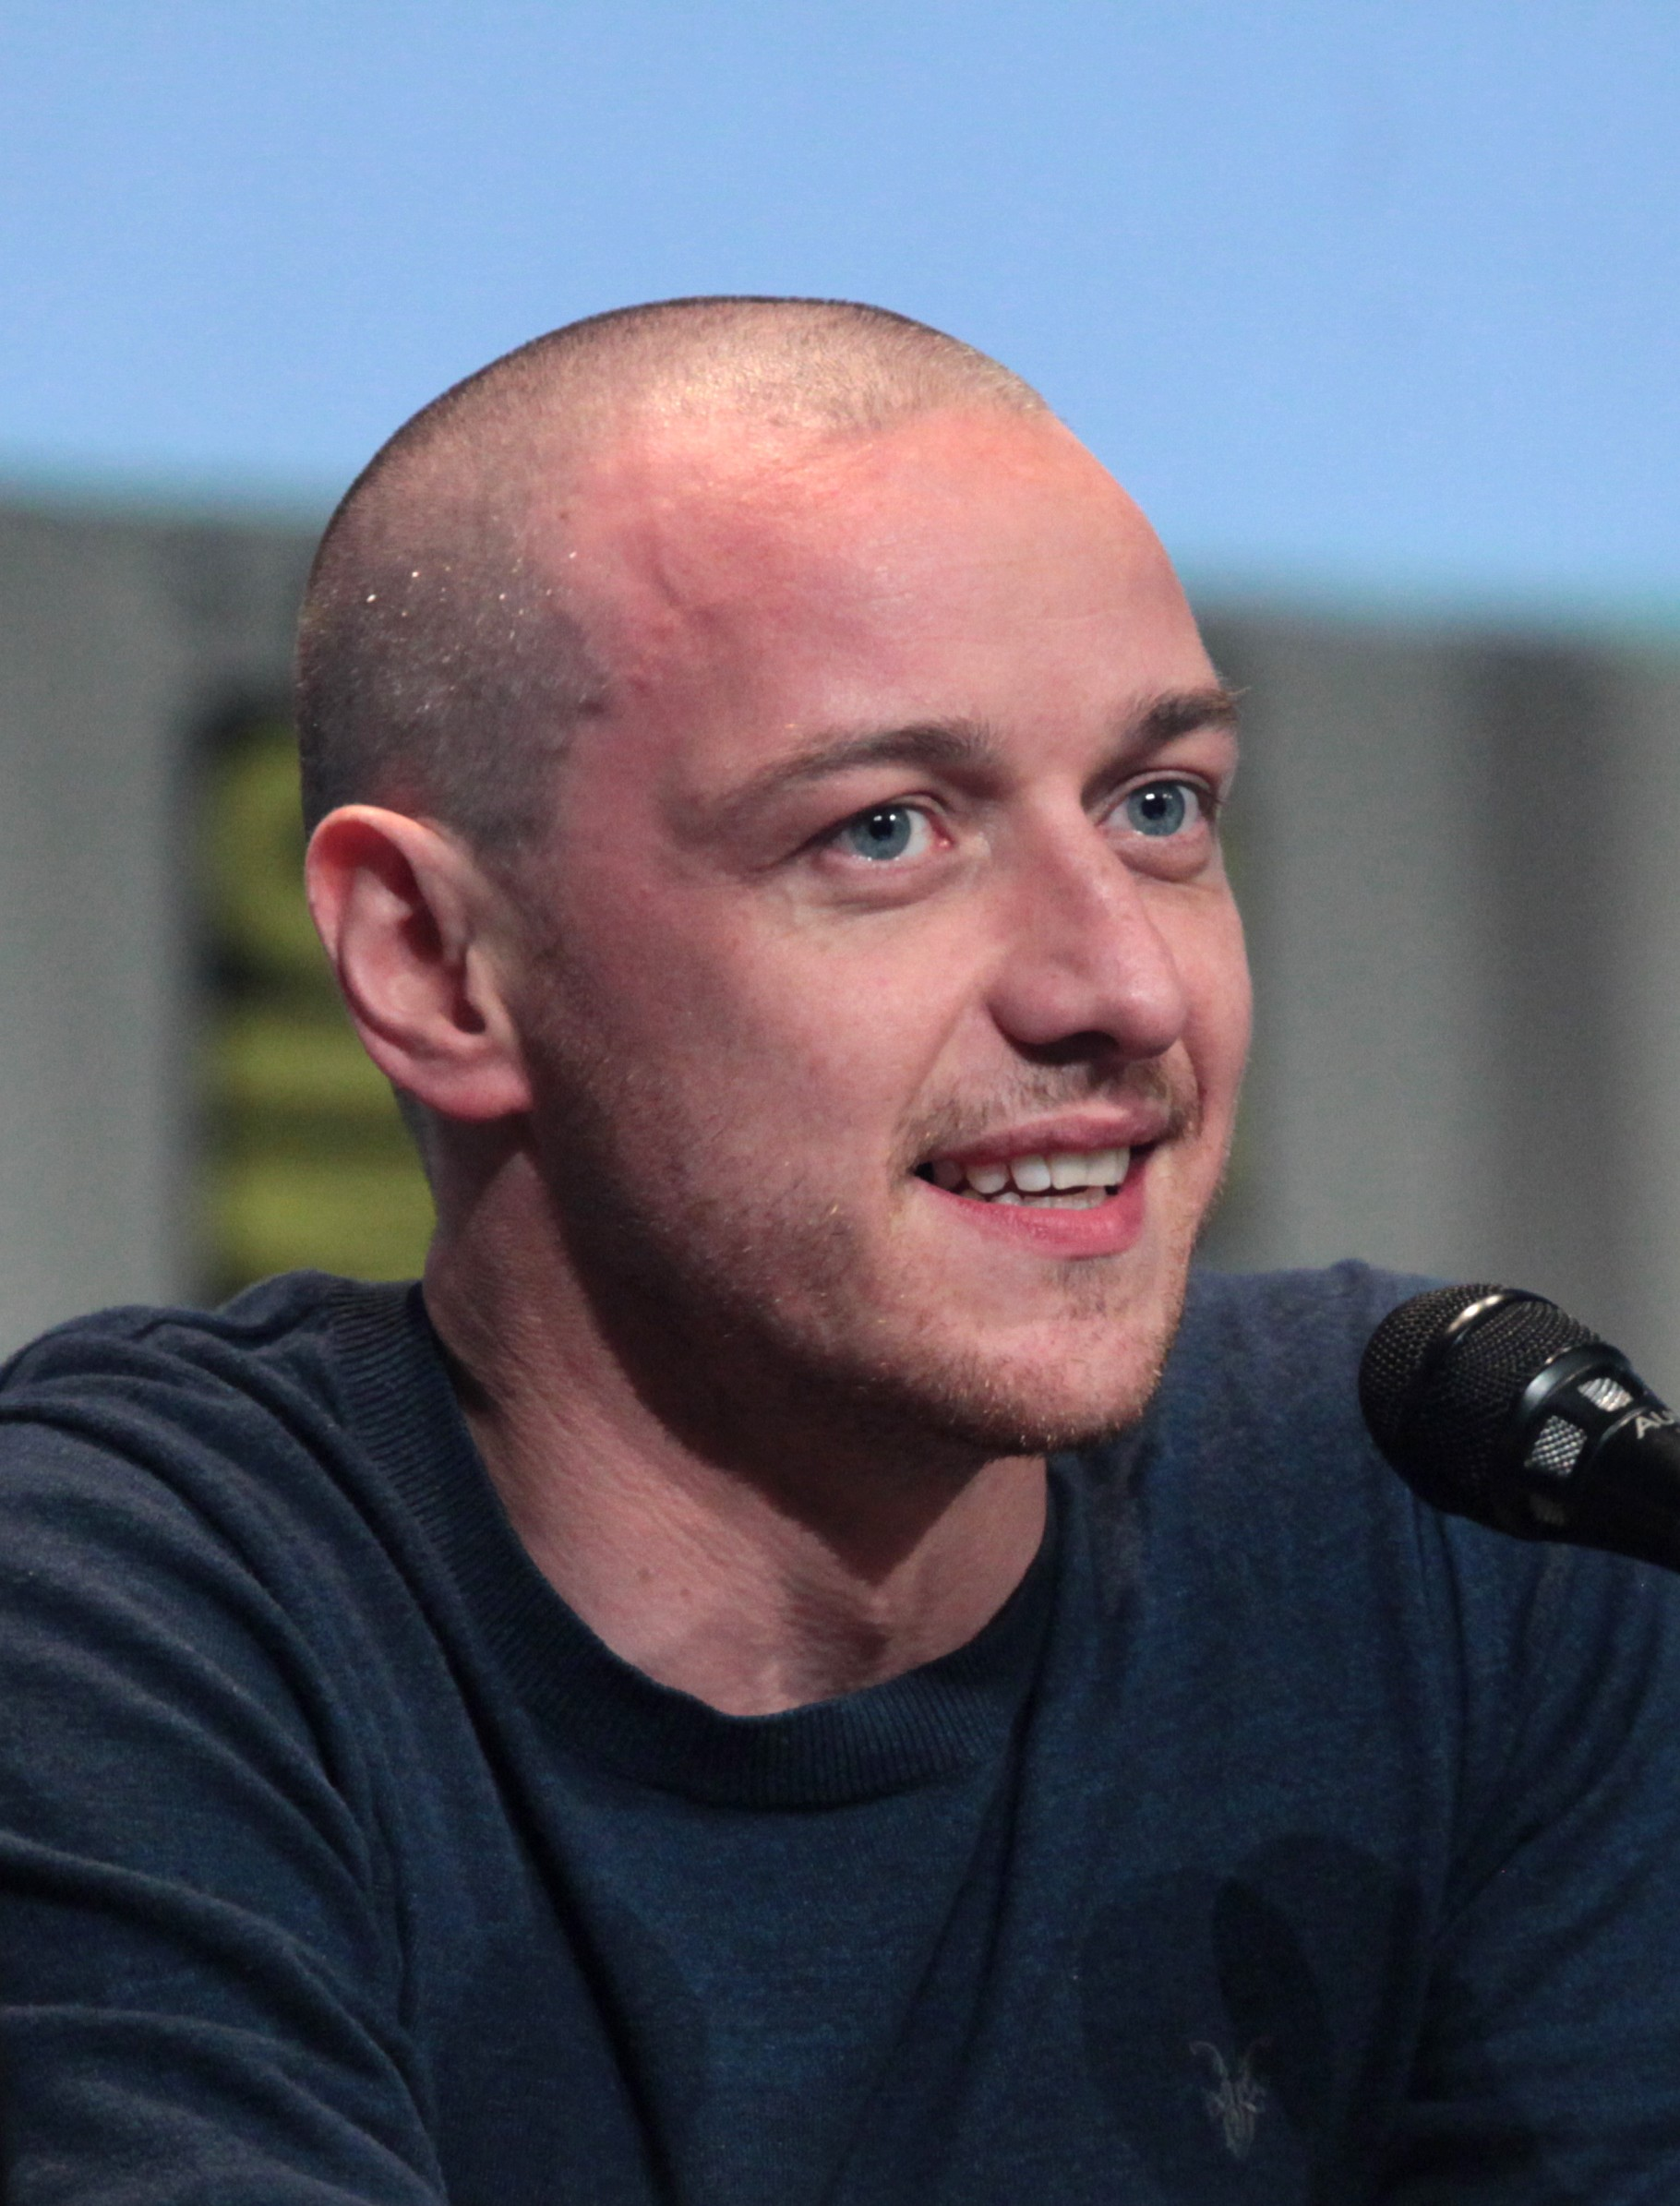 McAvoy at the 2015 [[San Diego Comic-Con]]